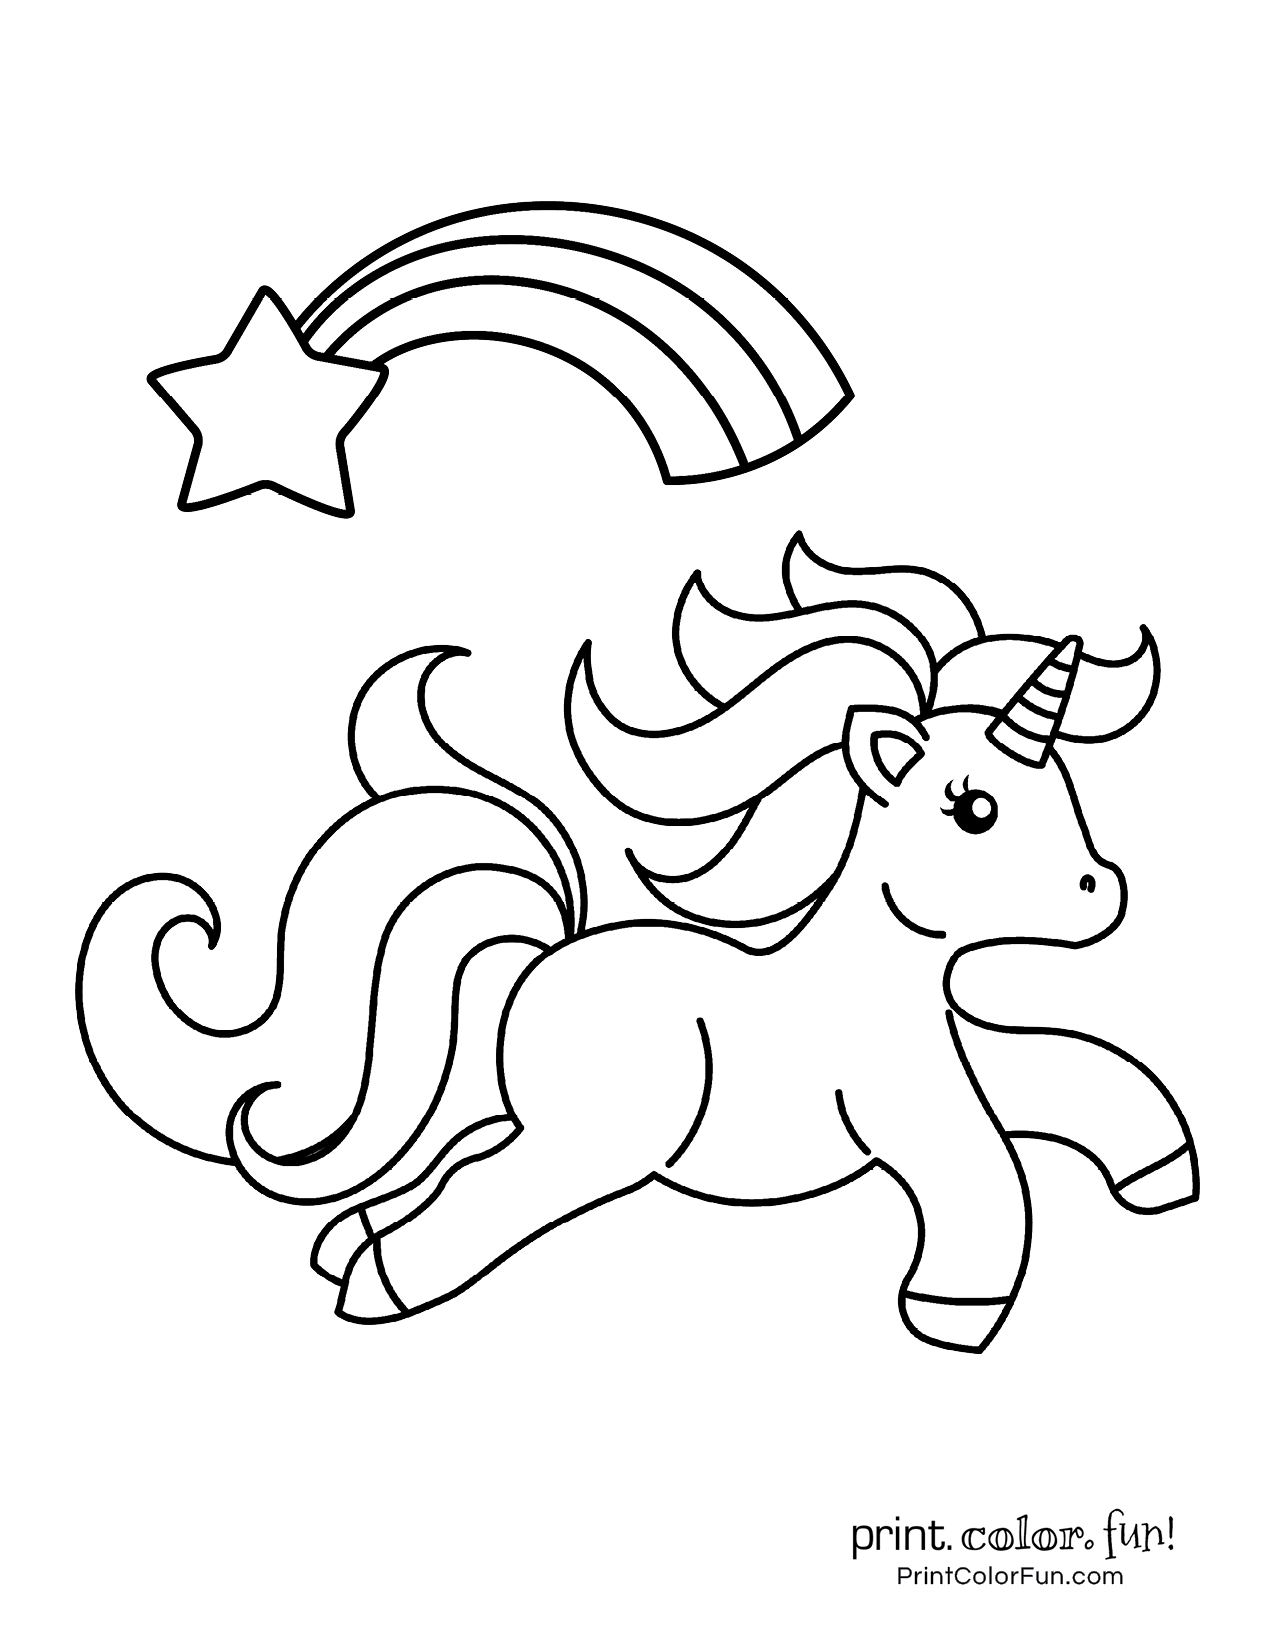 Unicorn Coloring Pages Free6 Unicorn Coloring Pages My Little Unicorn Unicorn Pictures